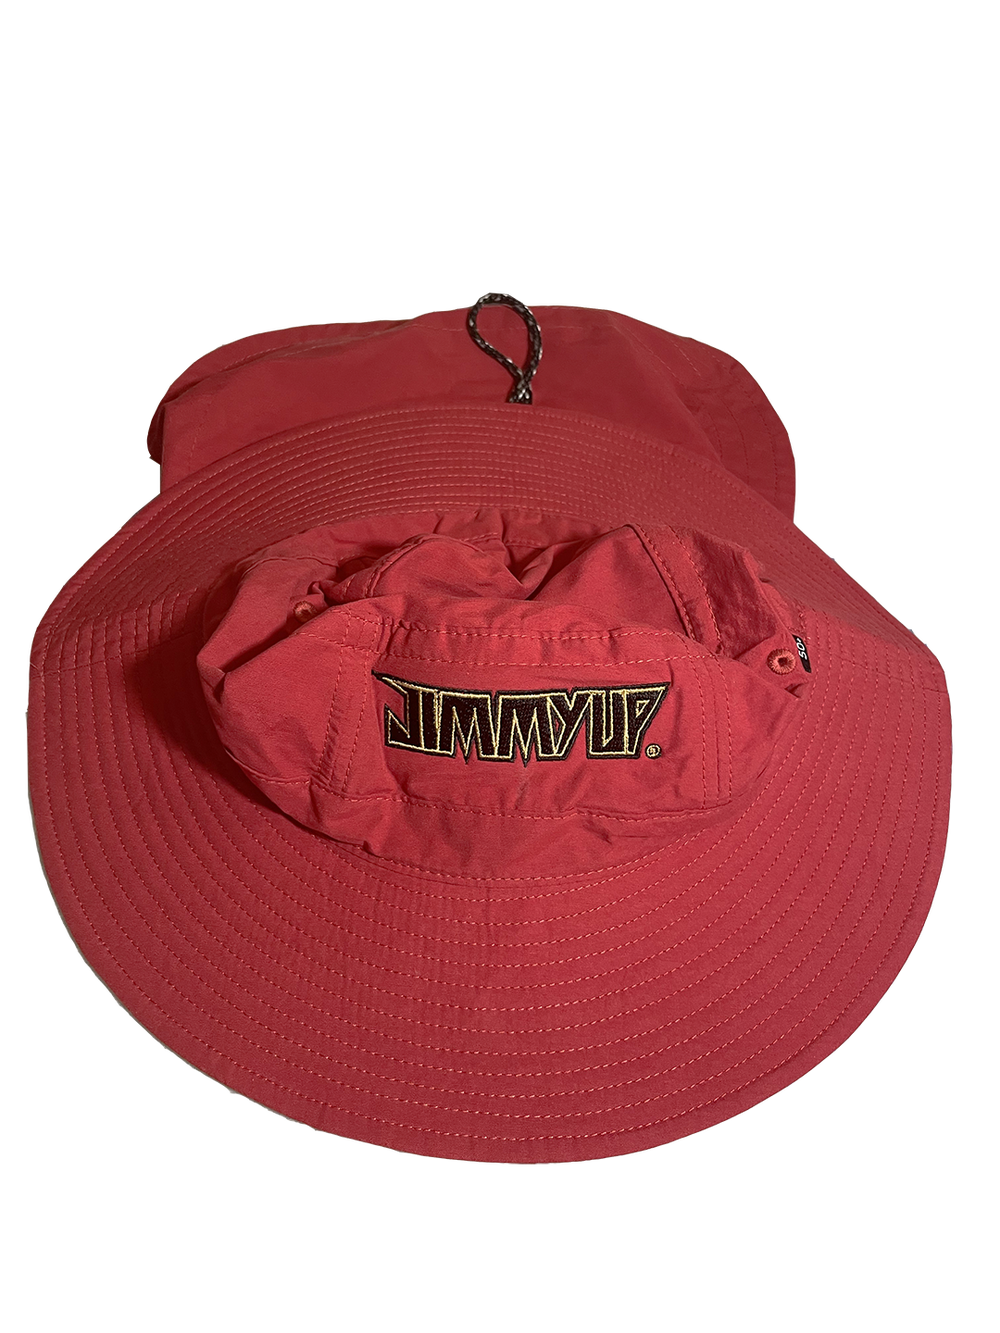 Image of Jimmy Up Full Coverage SPF Party Hats (RED)